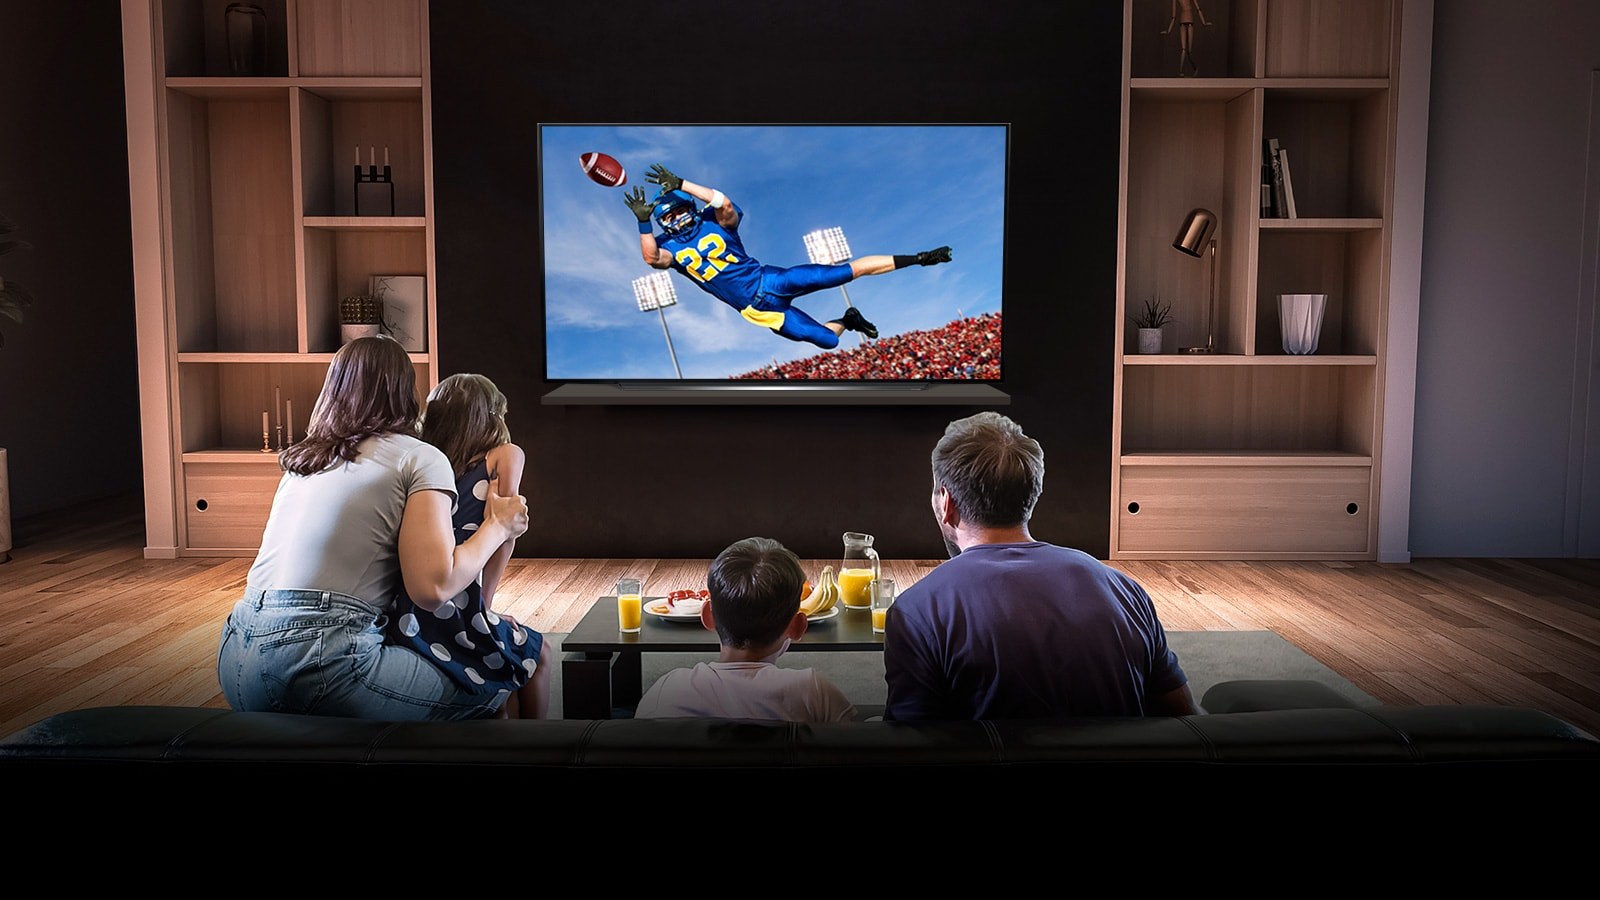 People watch an American football game on TV in the living room